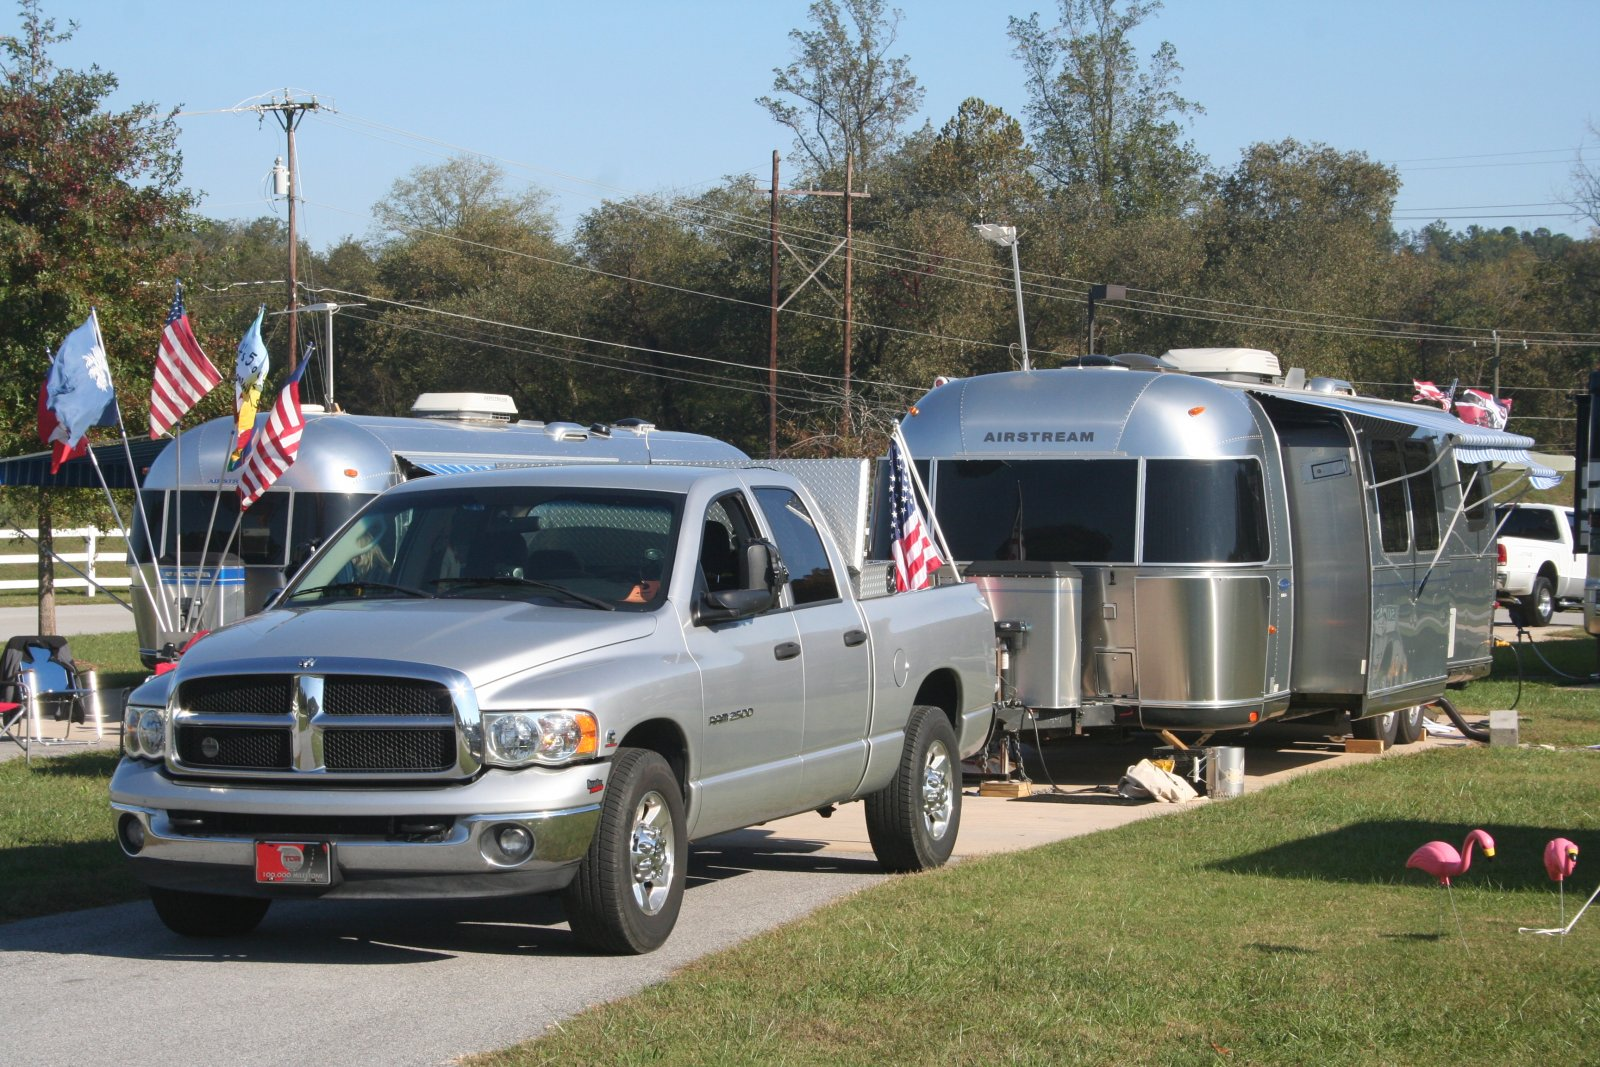 Click image for larger version  Name:Airstream 072.jpg Views:74 Size:399.8 KB ID:170415